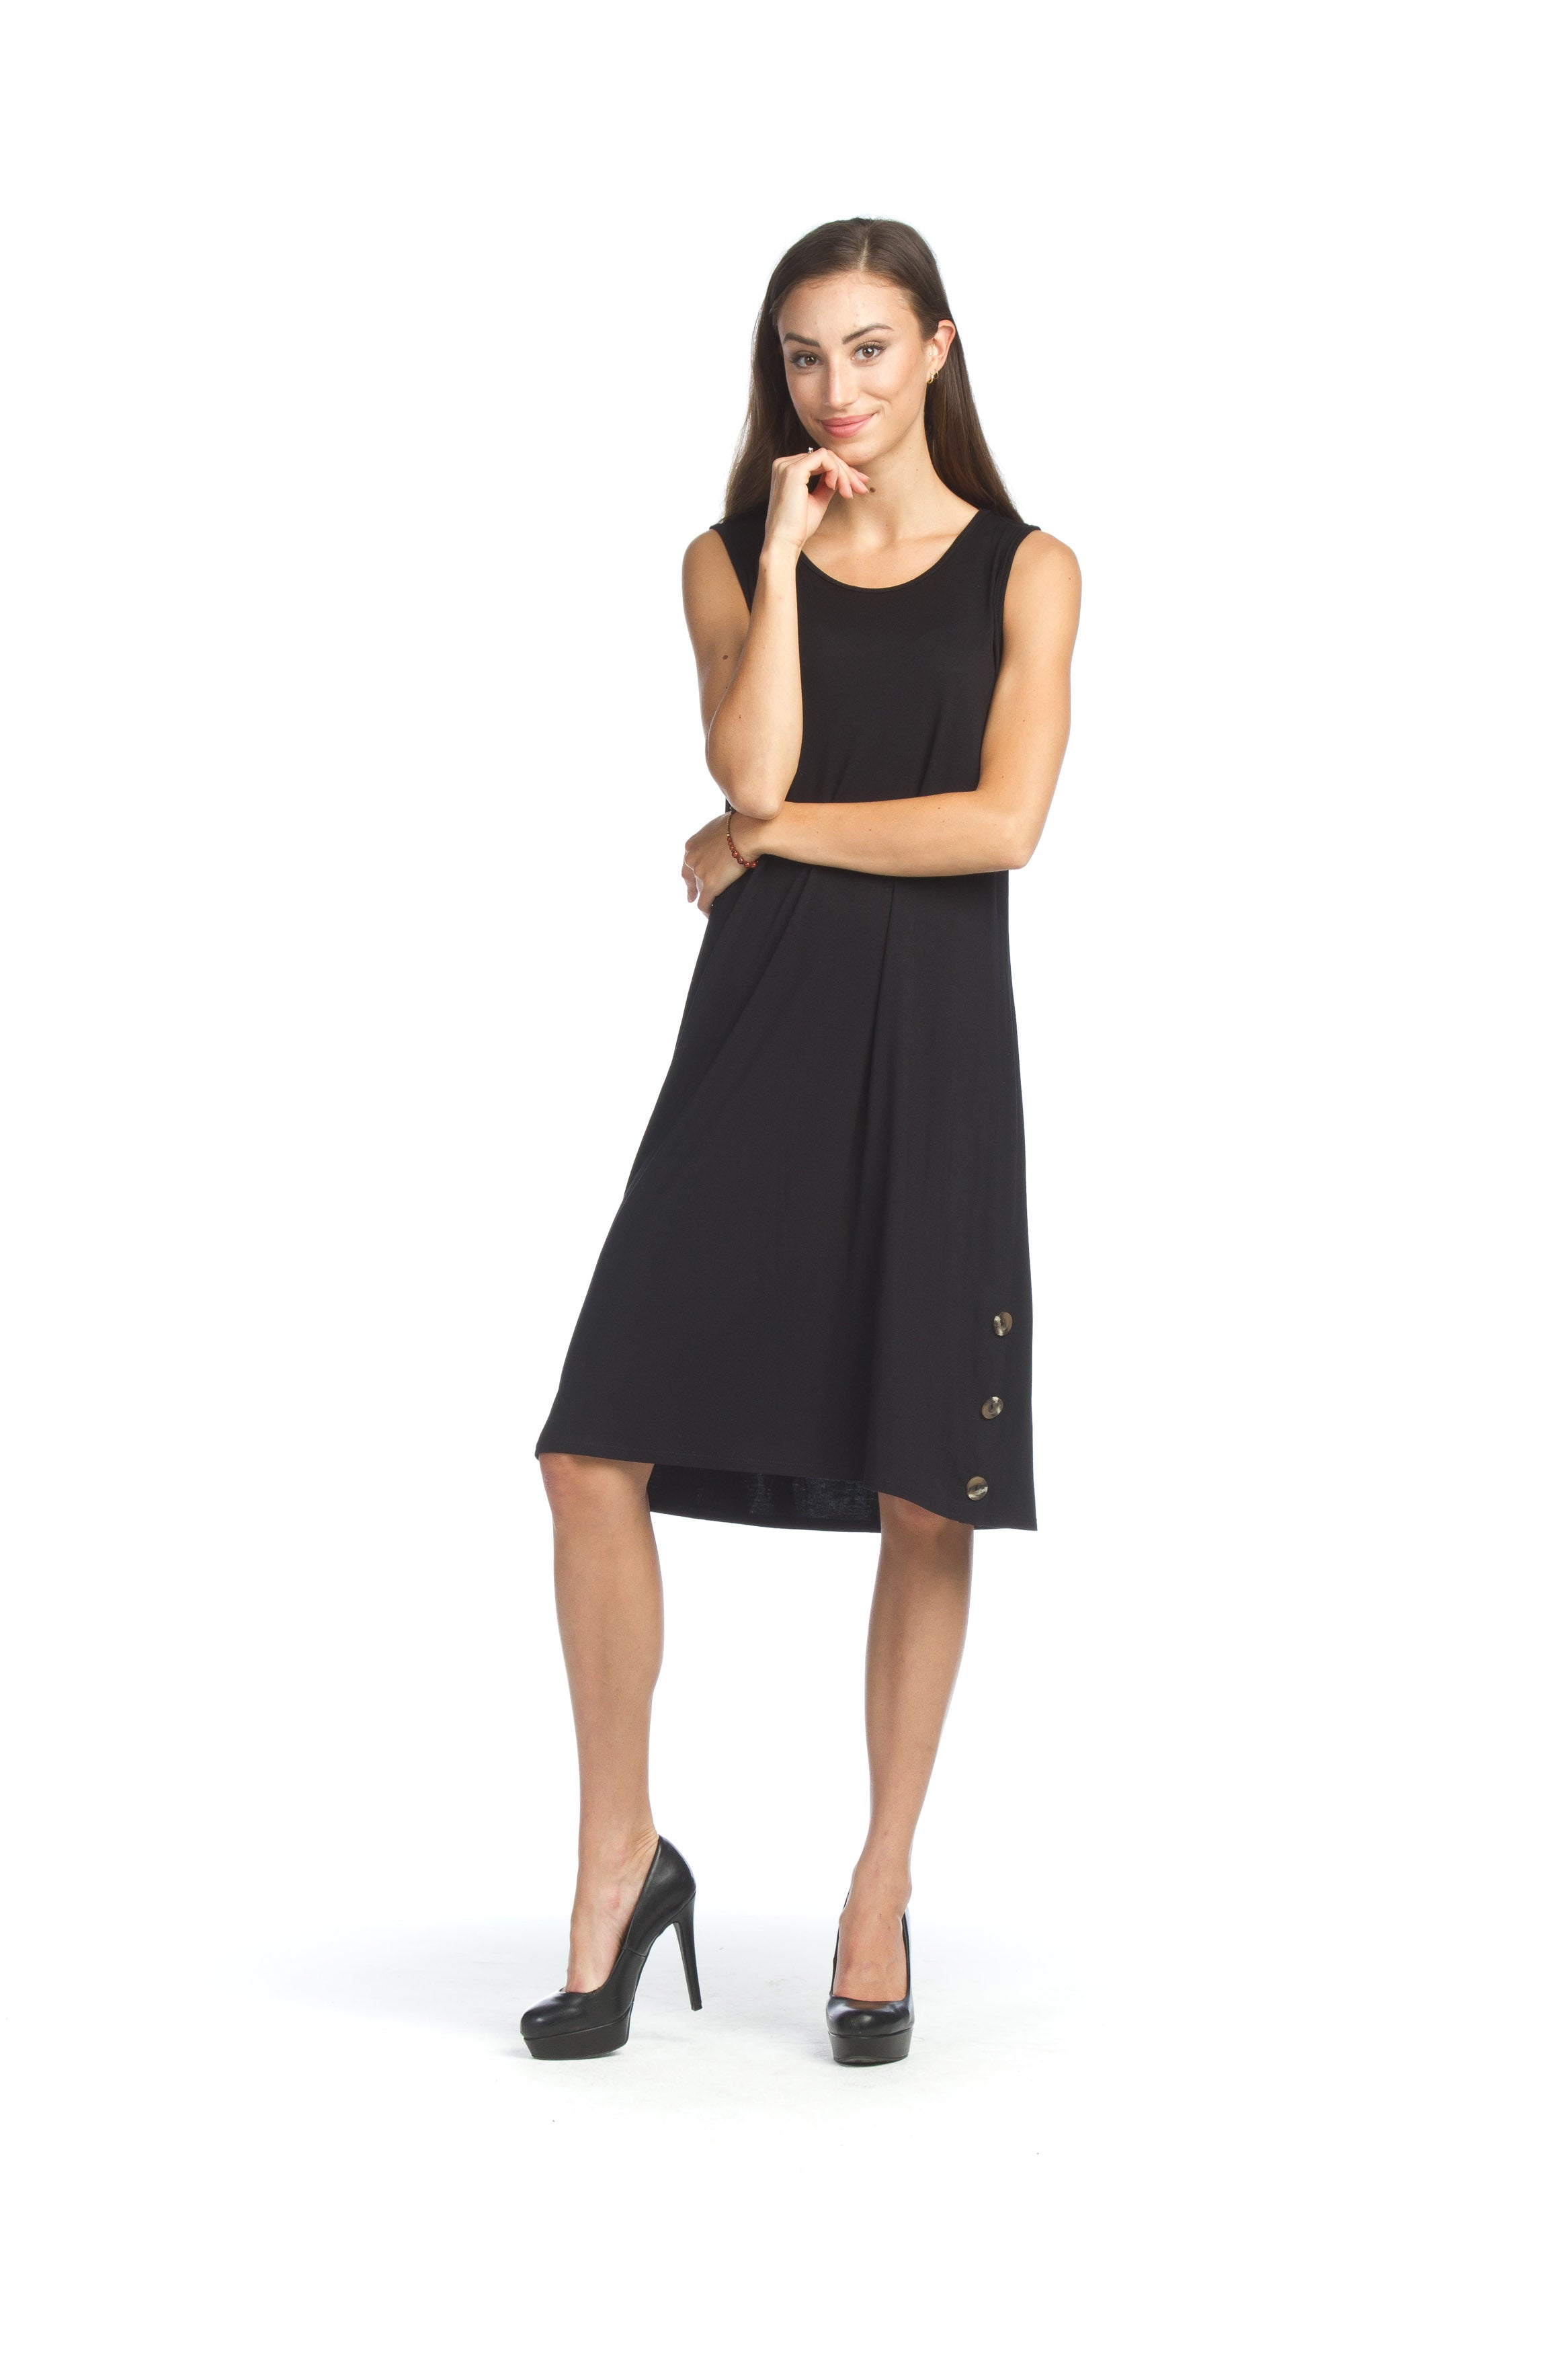 Papillon PD07630 Black Sleeveless Stretchy Dress